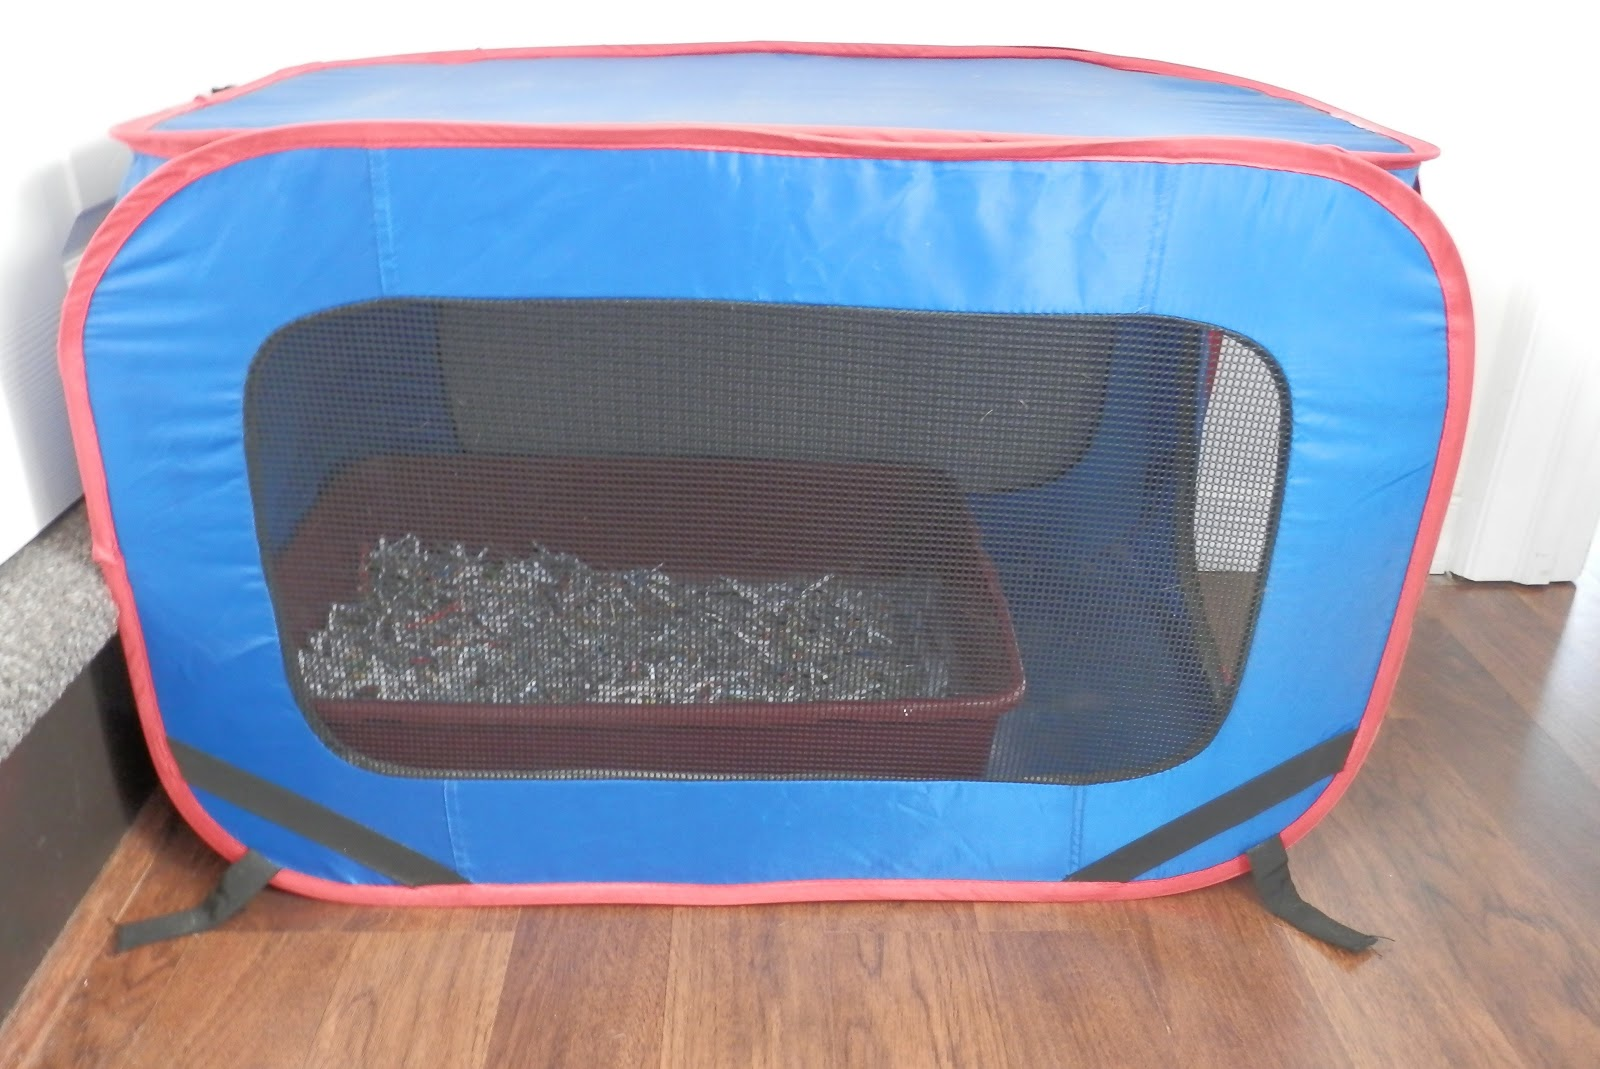 DIY Cat Litter Boxes & How To Train Cats To Use The Litter Box - Cat Lover | Cat Training